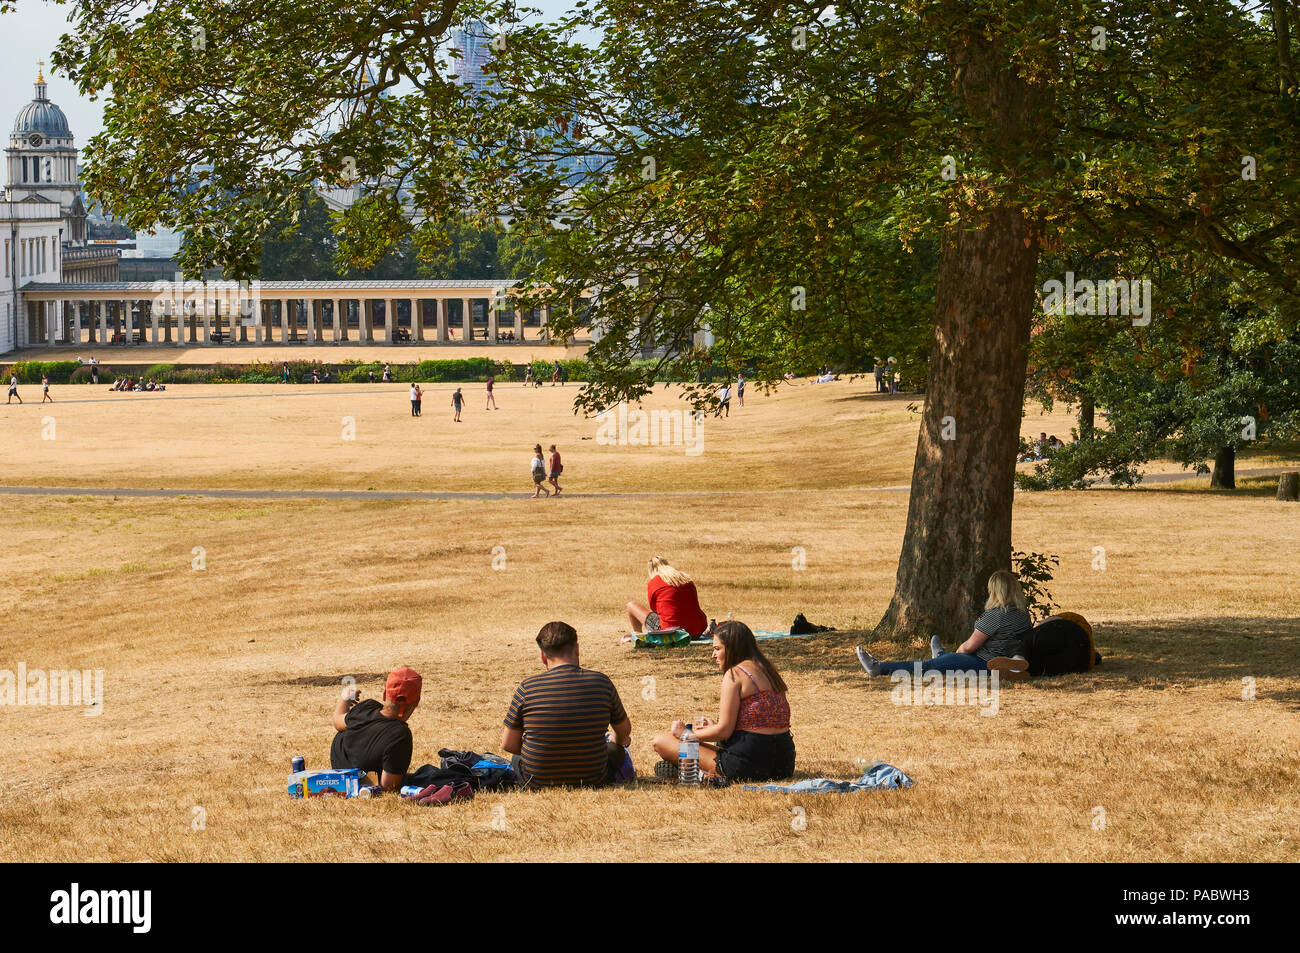 People enjoying the hot weather in Greenwich Park, South East London, during the 2018 heatwave - Stock Image